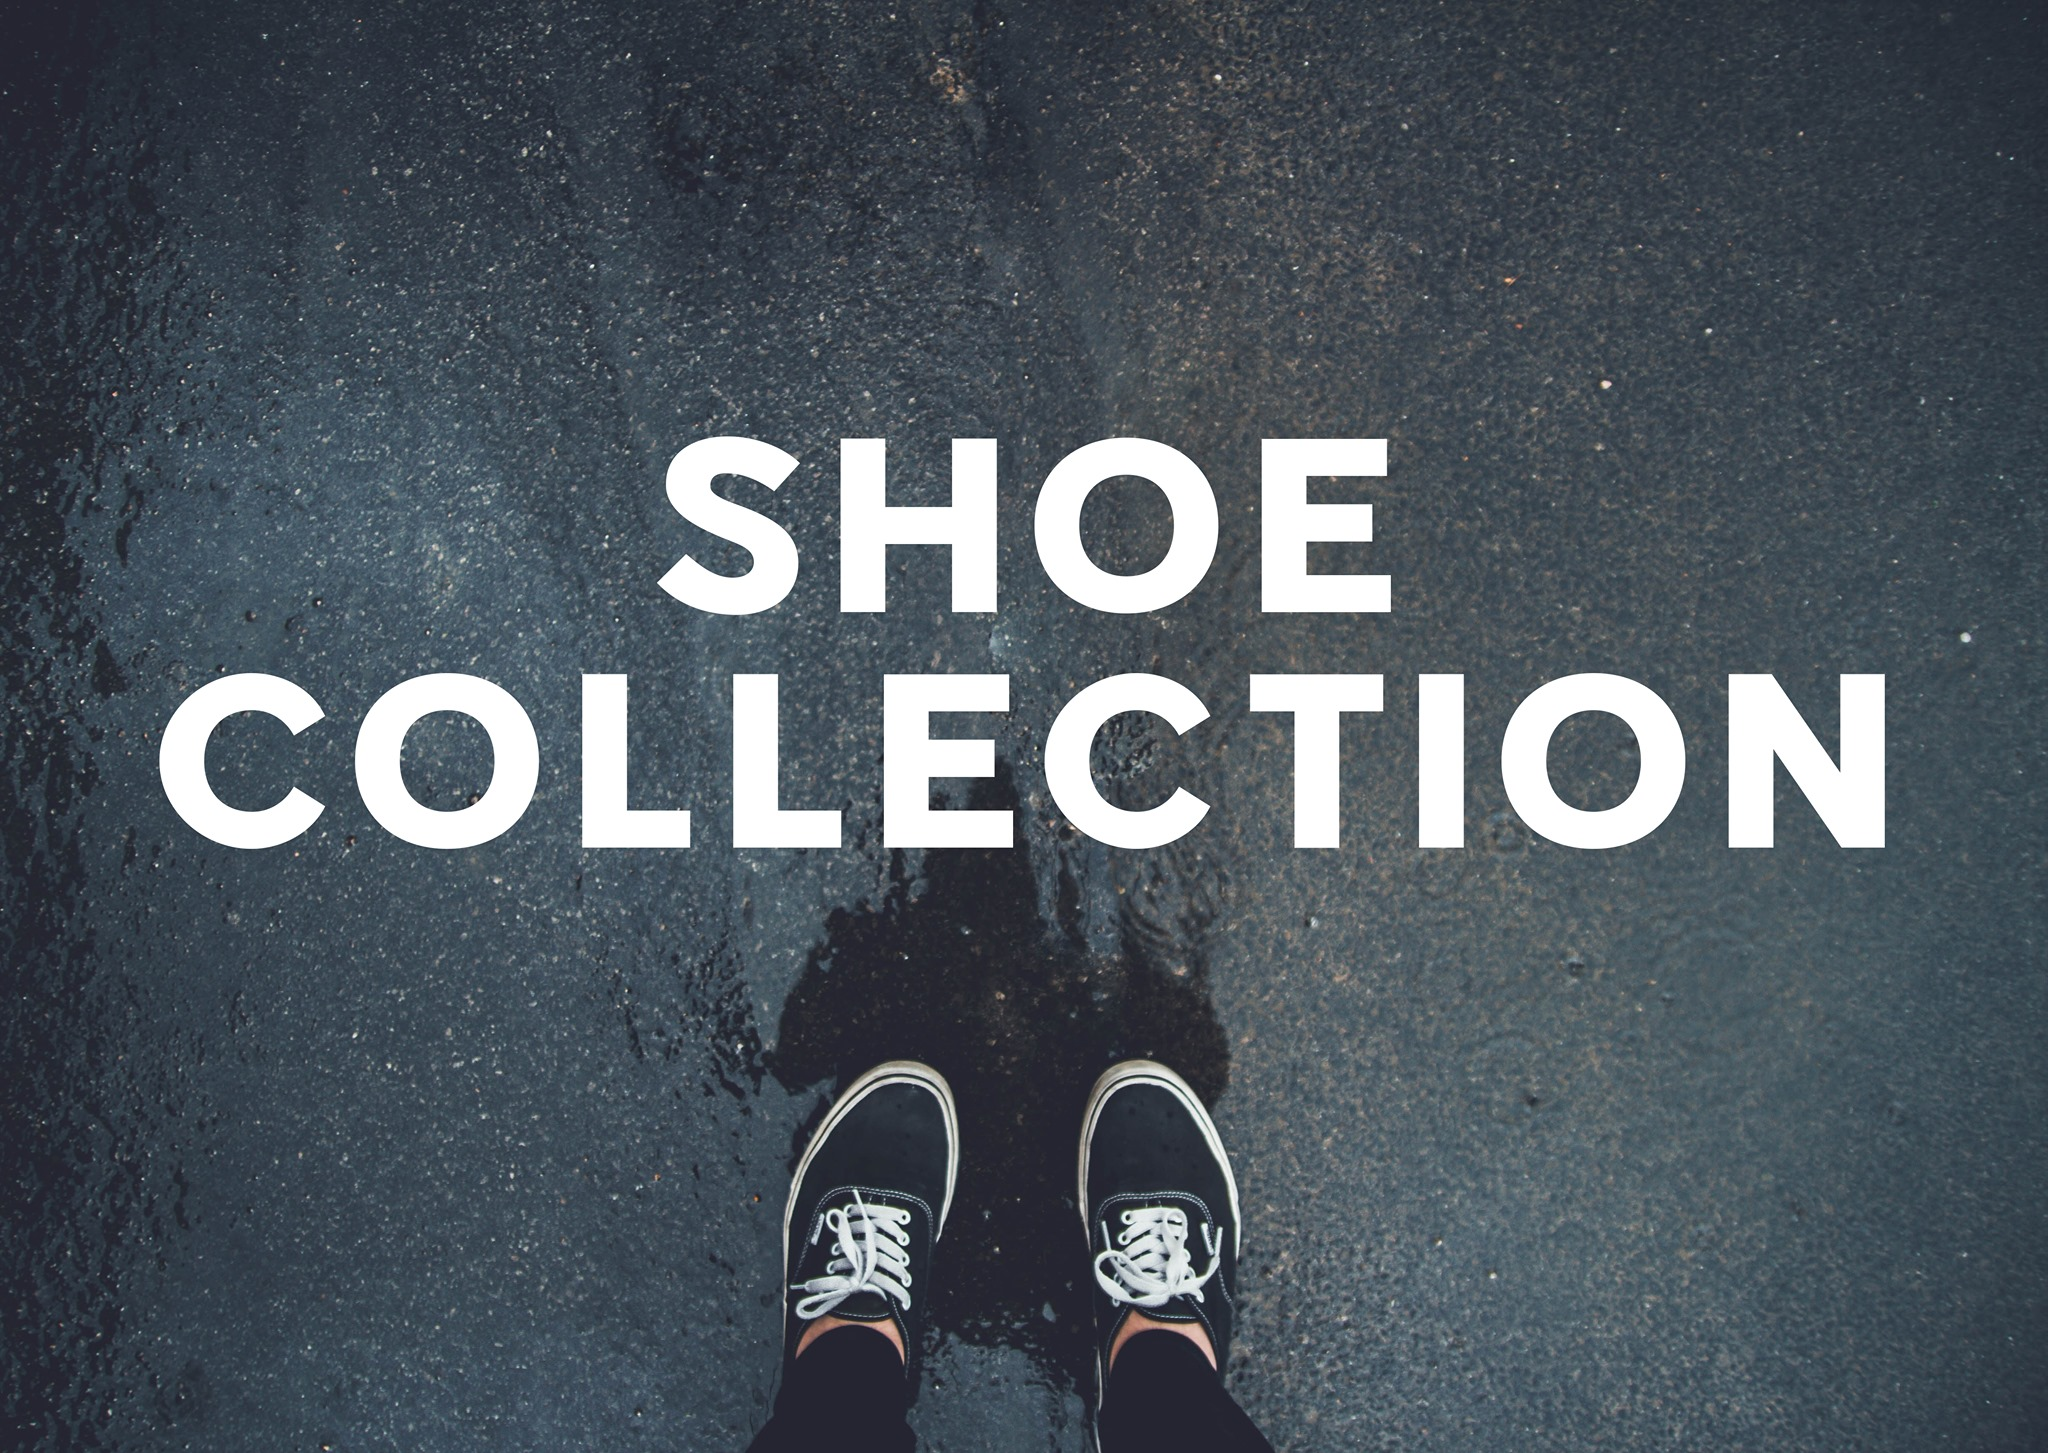 Shoes Needed! - Day In The Park is coming up on May 26th and we can't wait to serve our community and meet practical needs for people in Central Maine!We'll be collecting NEW shoes (any size, style, etc) to give away for free in the park.Whether you come to Central or not, we'd love to have you drop off a pair of new shoes in the bins in the entryways of either of our church locations!